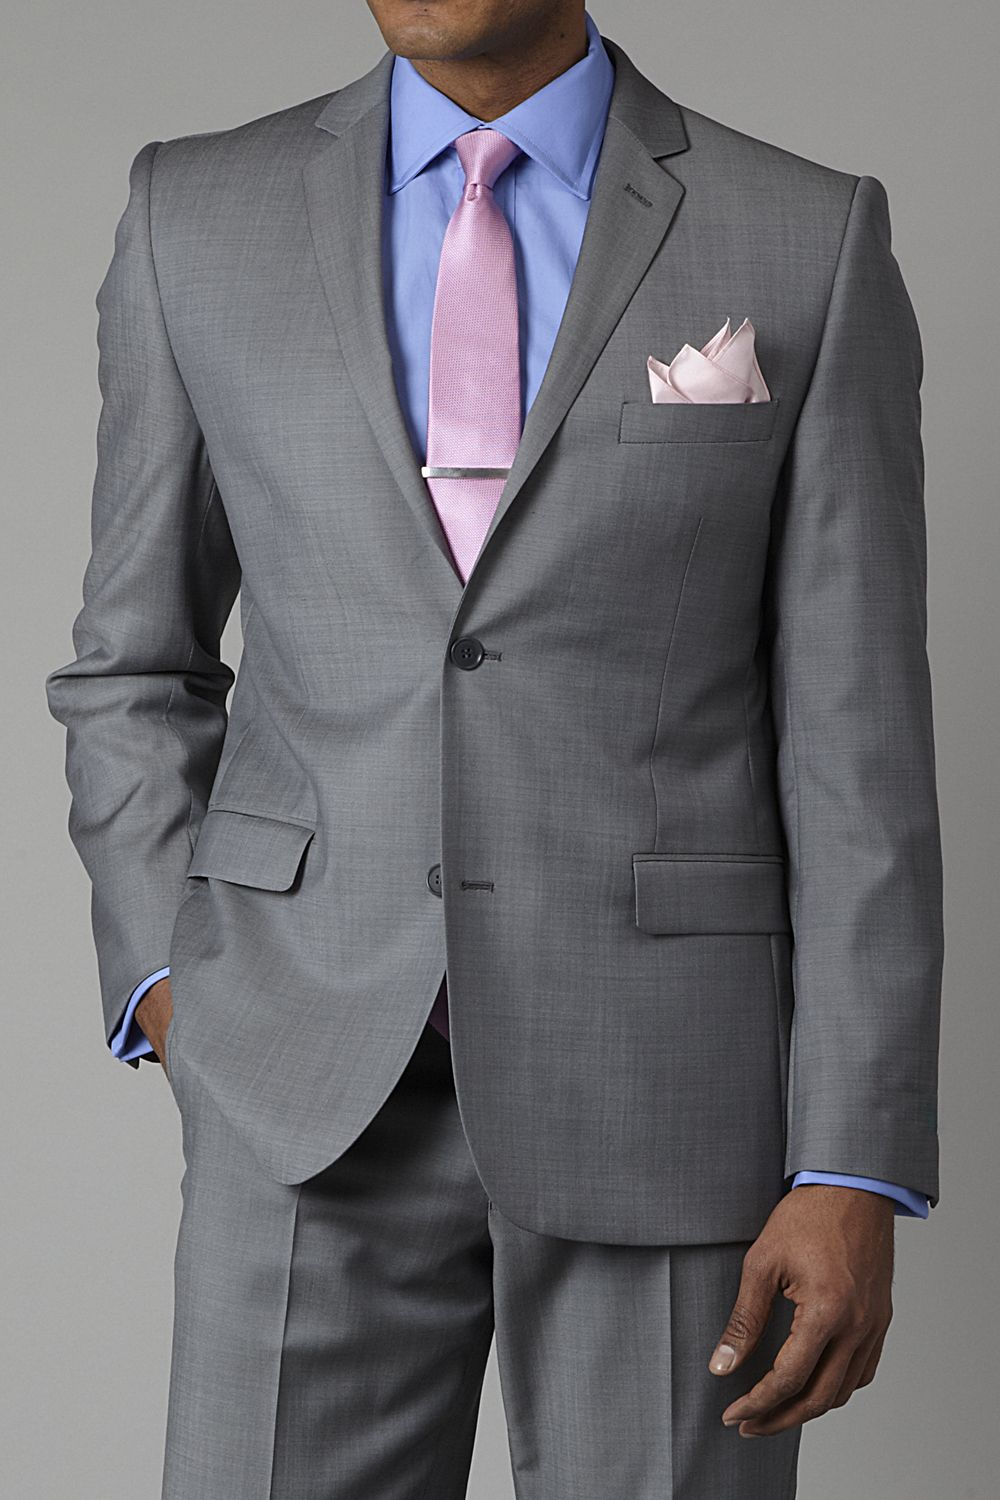 grey suit light blue shirt pink tie wedding suits in